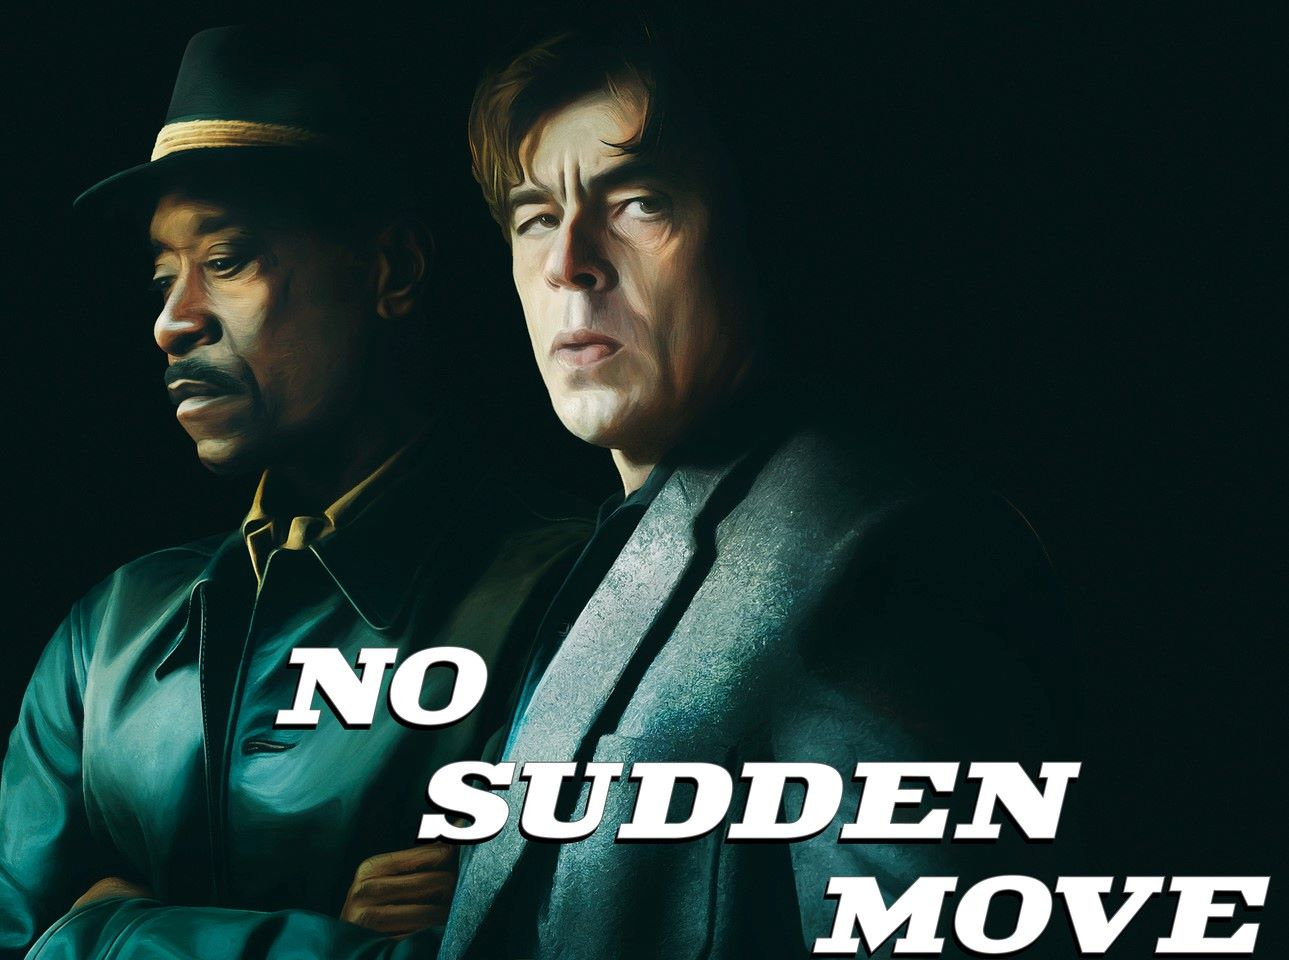 Poster for 'No Sudden Move'